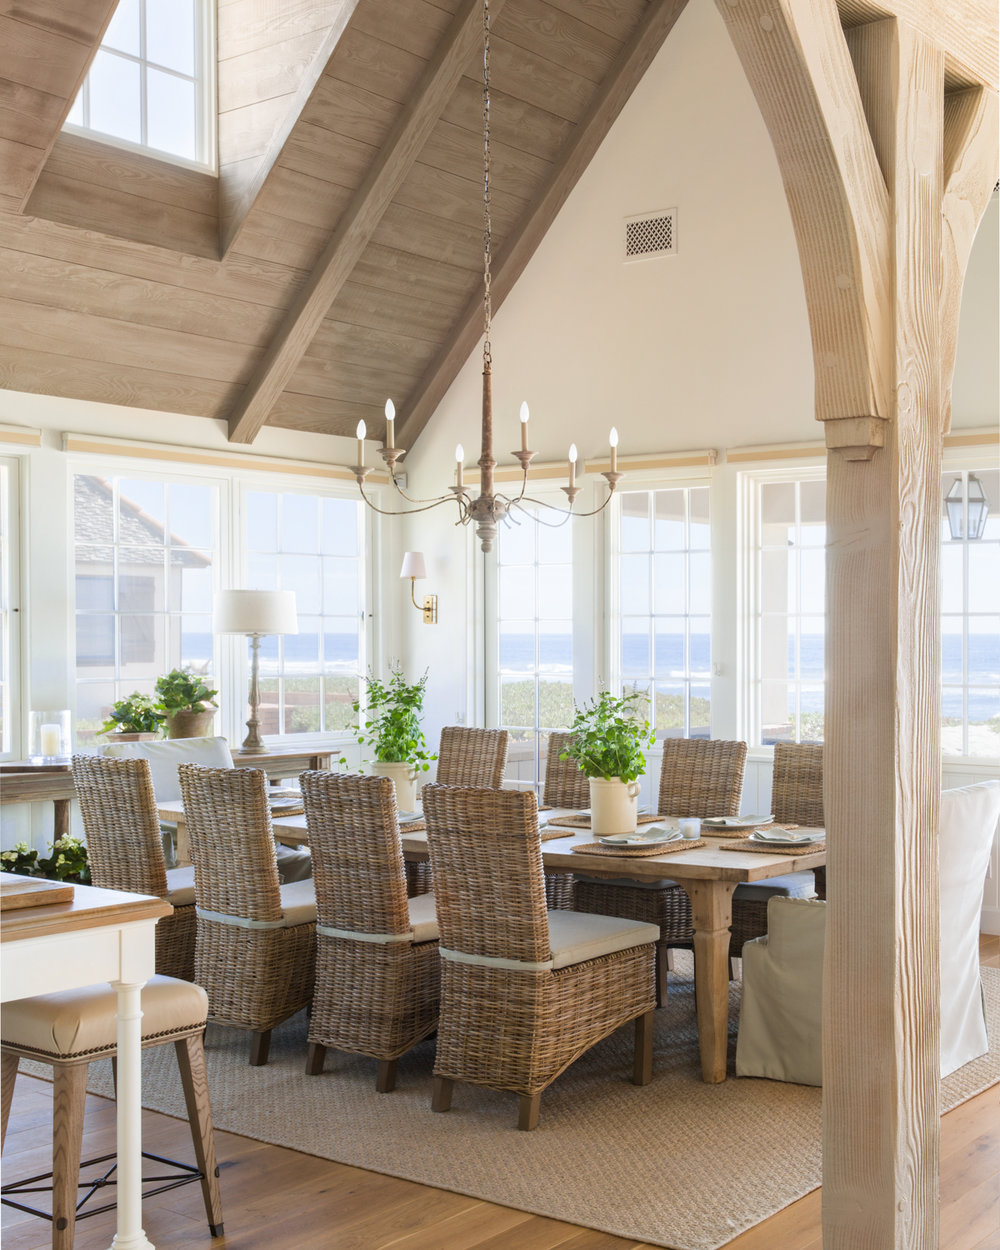 Beautiful Beach House Interiors: 12 Design Tips To Get Modern French Country Style Without